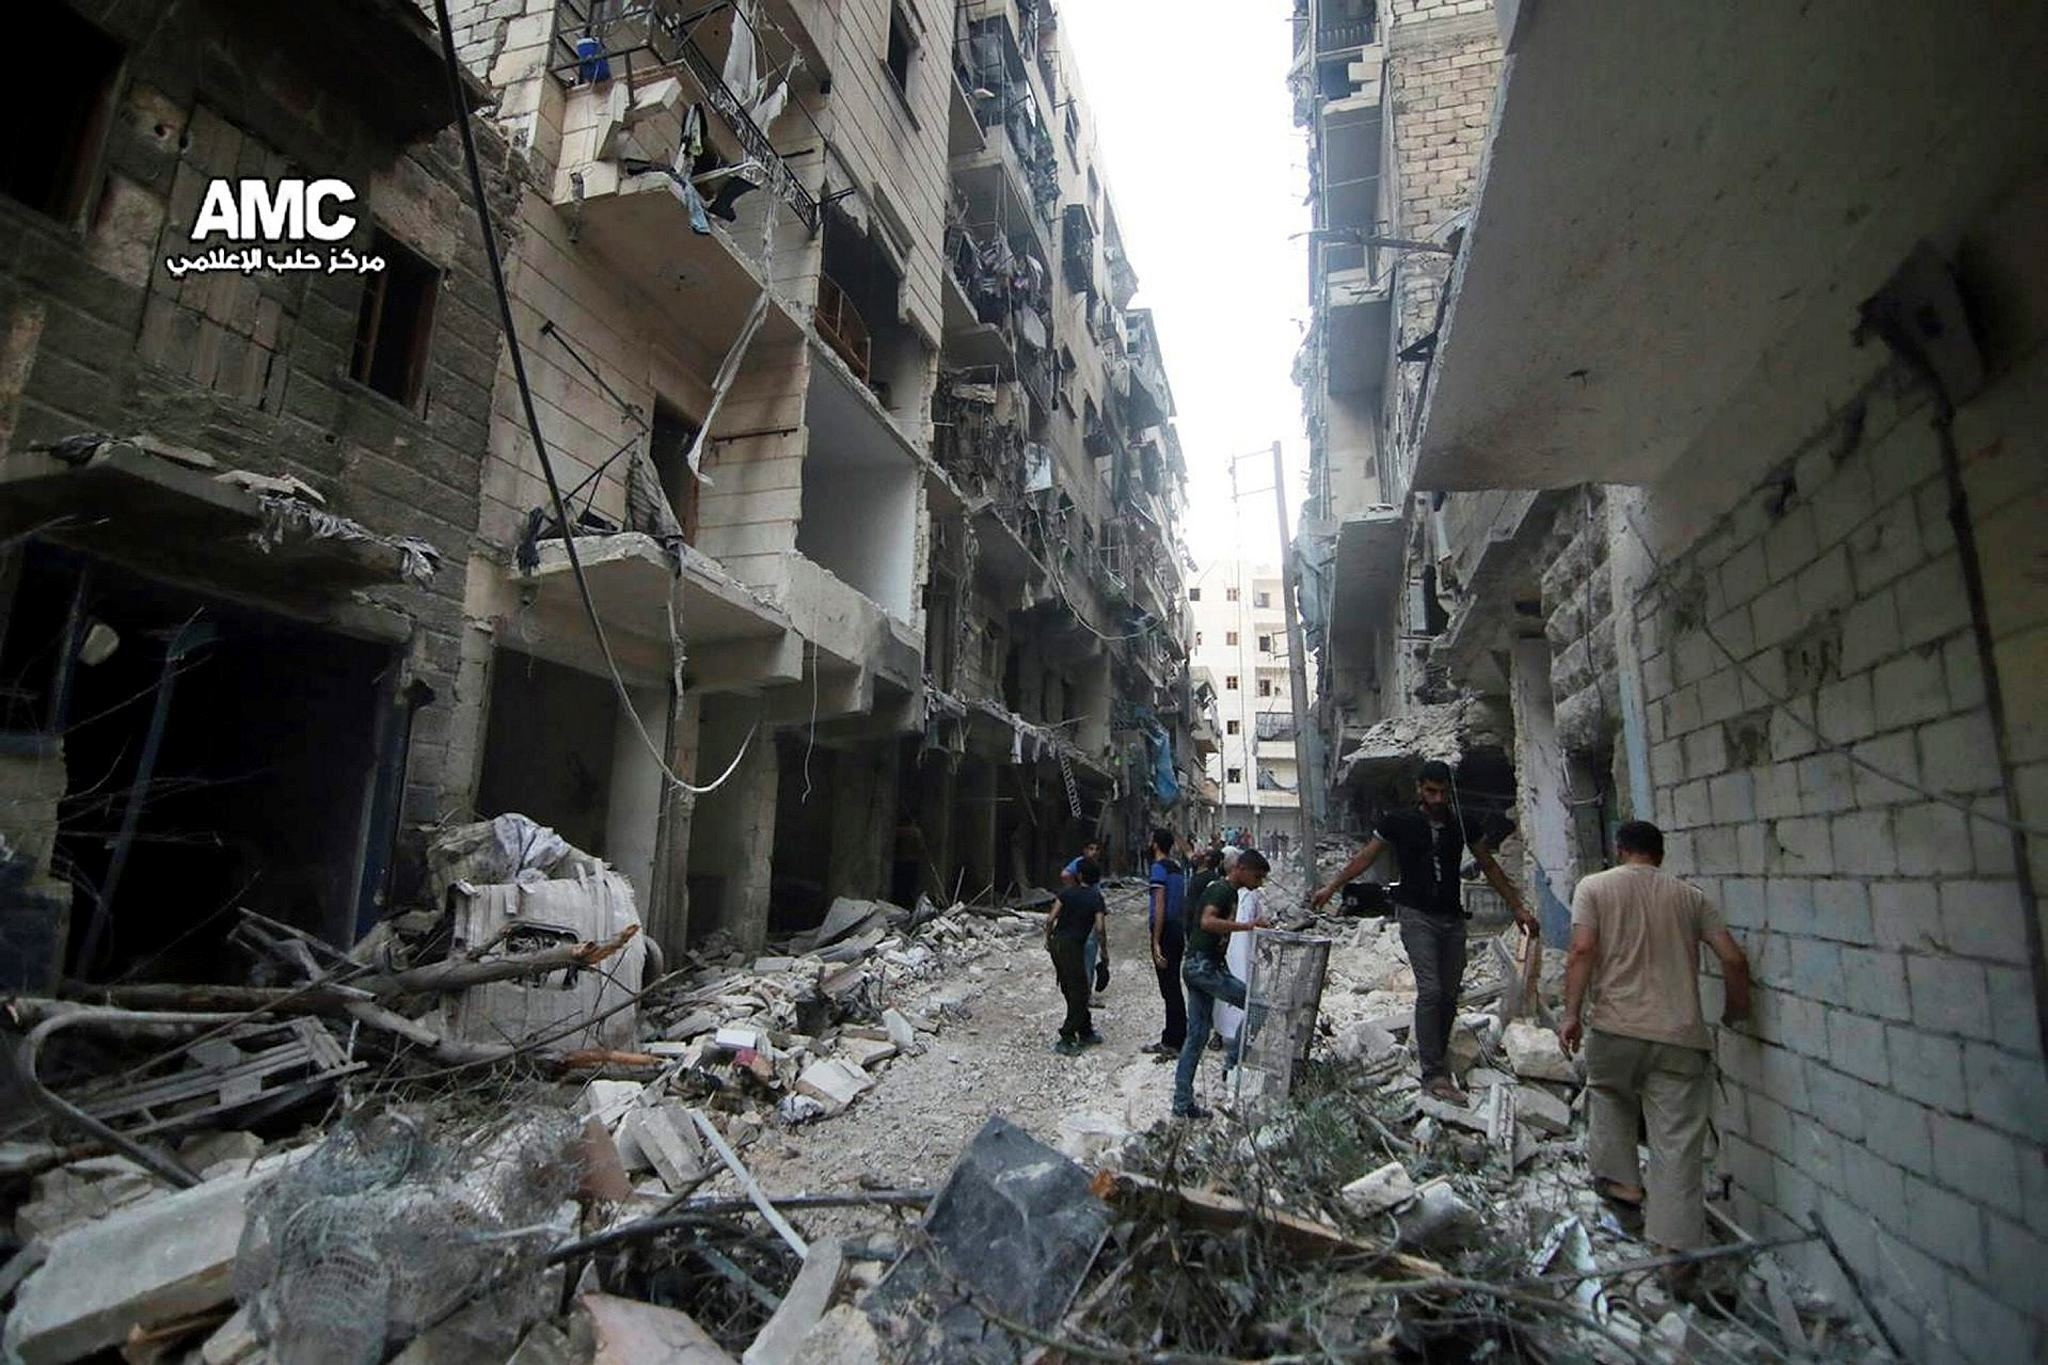 July. 29, 2016 photo, provided by the Syrian anti-government activist group Aleppo Media Center (AMC), shows Syrian citizens inspect damaged buildings after airstrikes hit Aleppo, Syria.